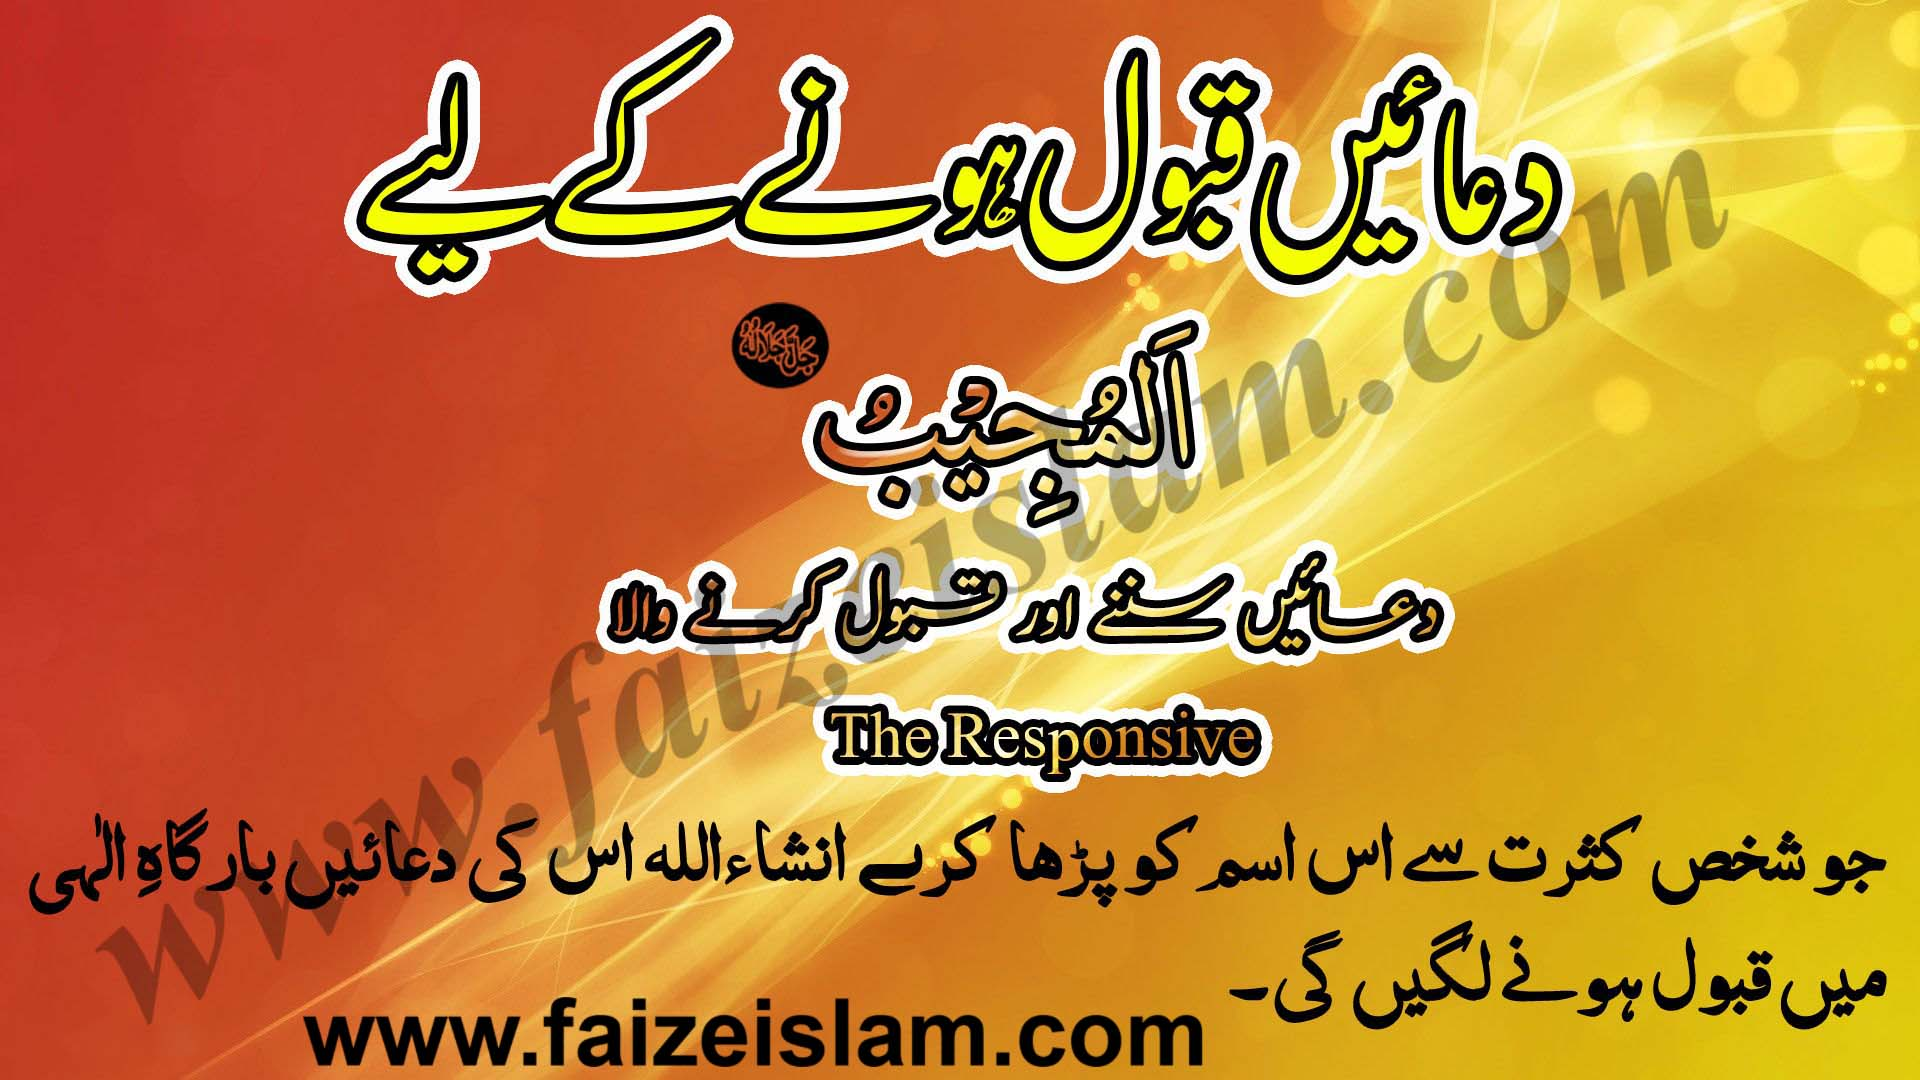 Photo of Dua'ain Qubool Karanay Kay Liye Wazifa In Urdu